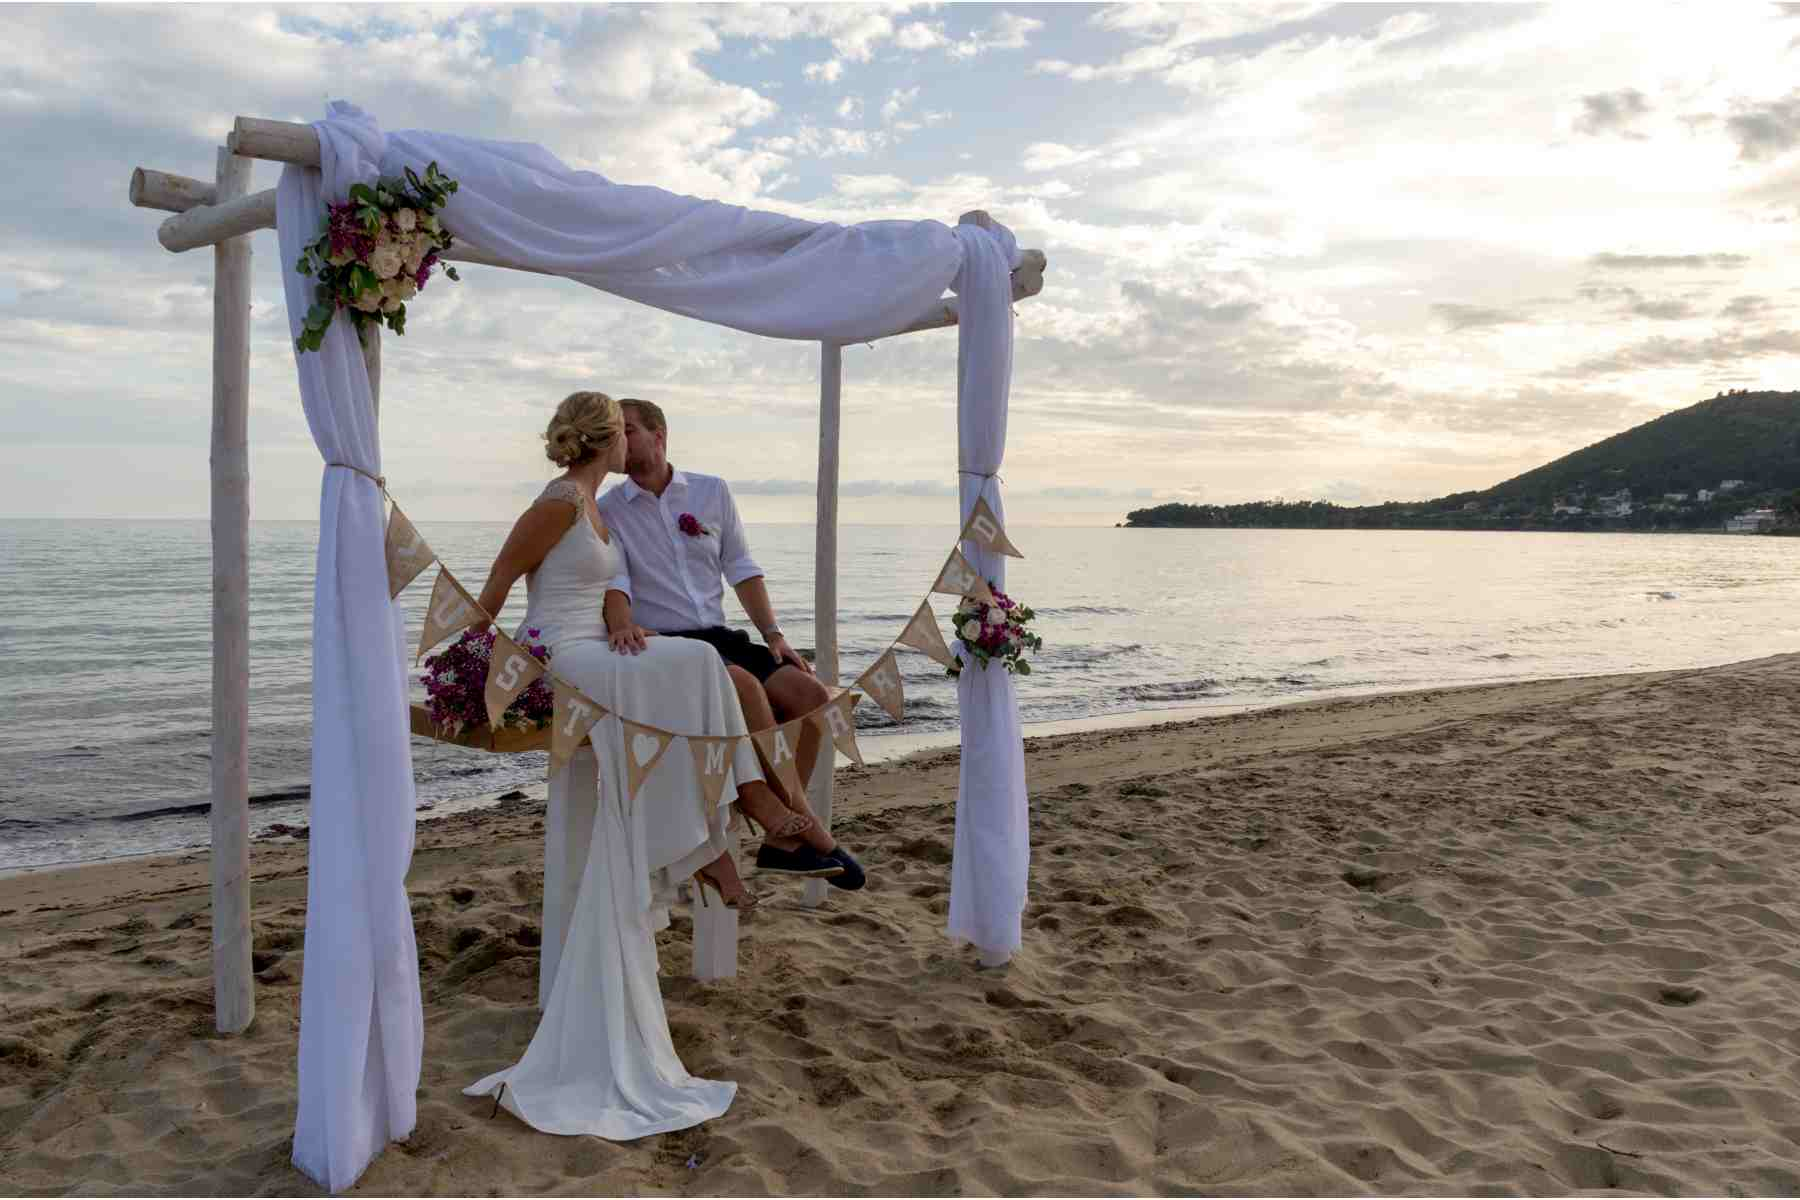 Romantic Civil or Symbolic Beach Wedding